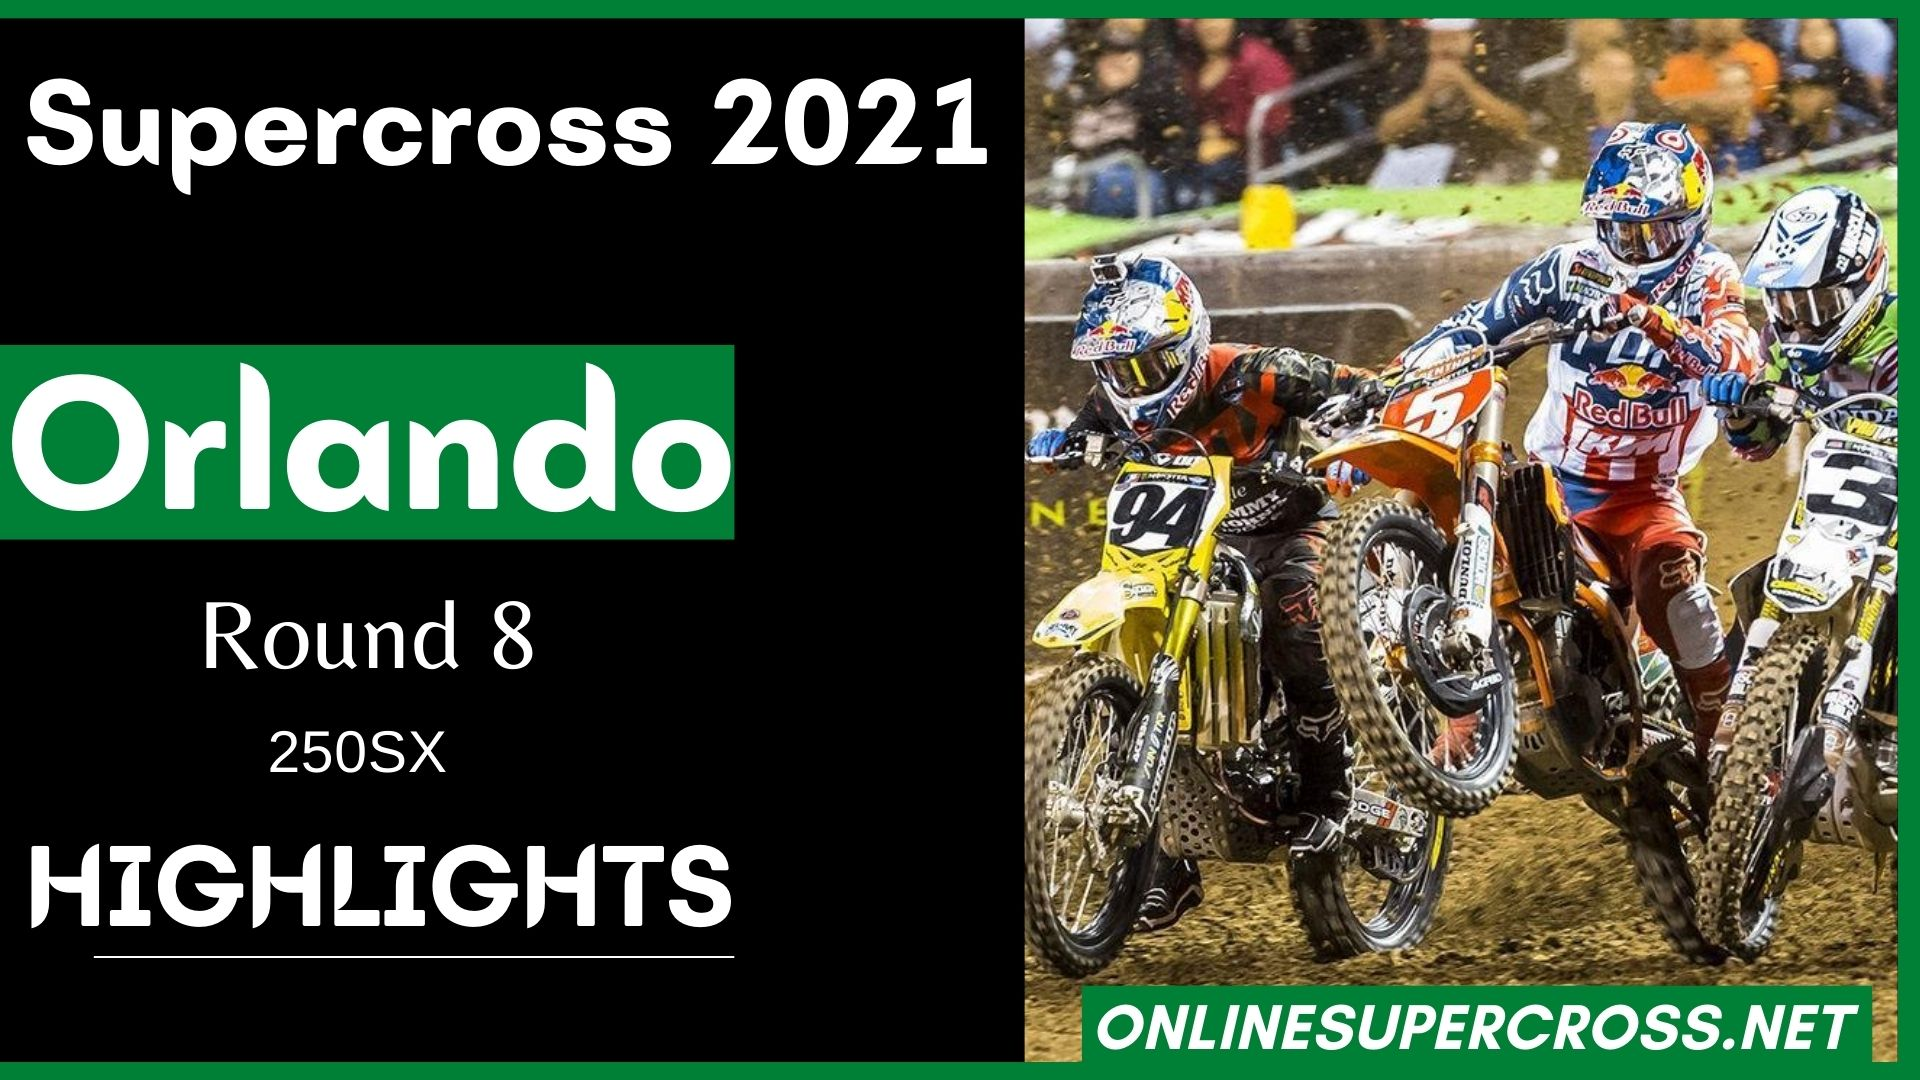 Orlando Round 8 250SX Highlights 2021 Supercross